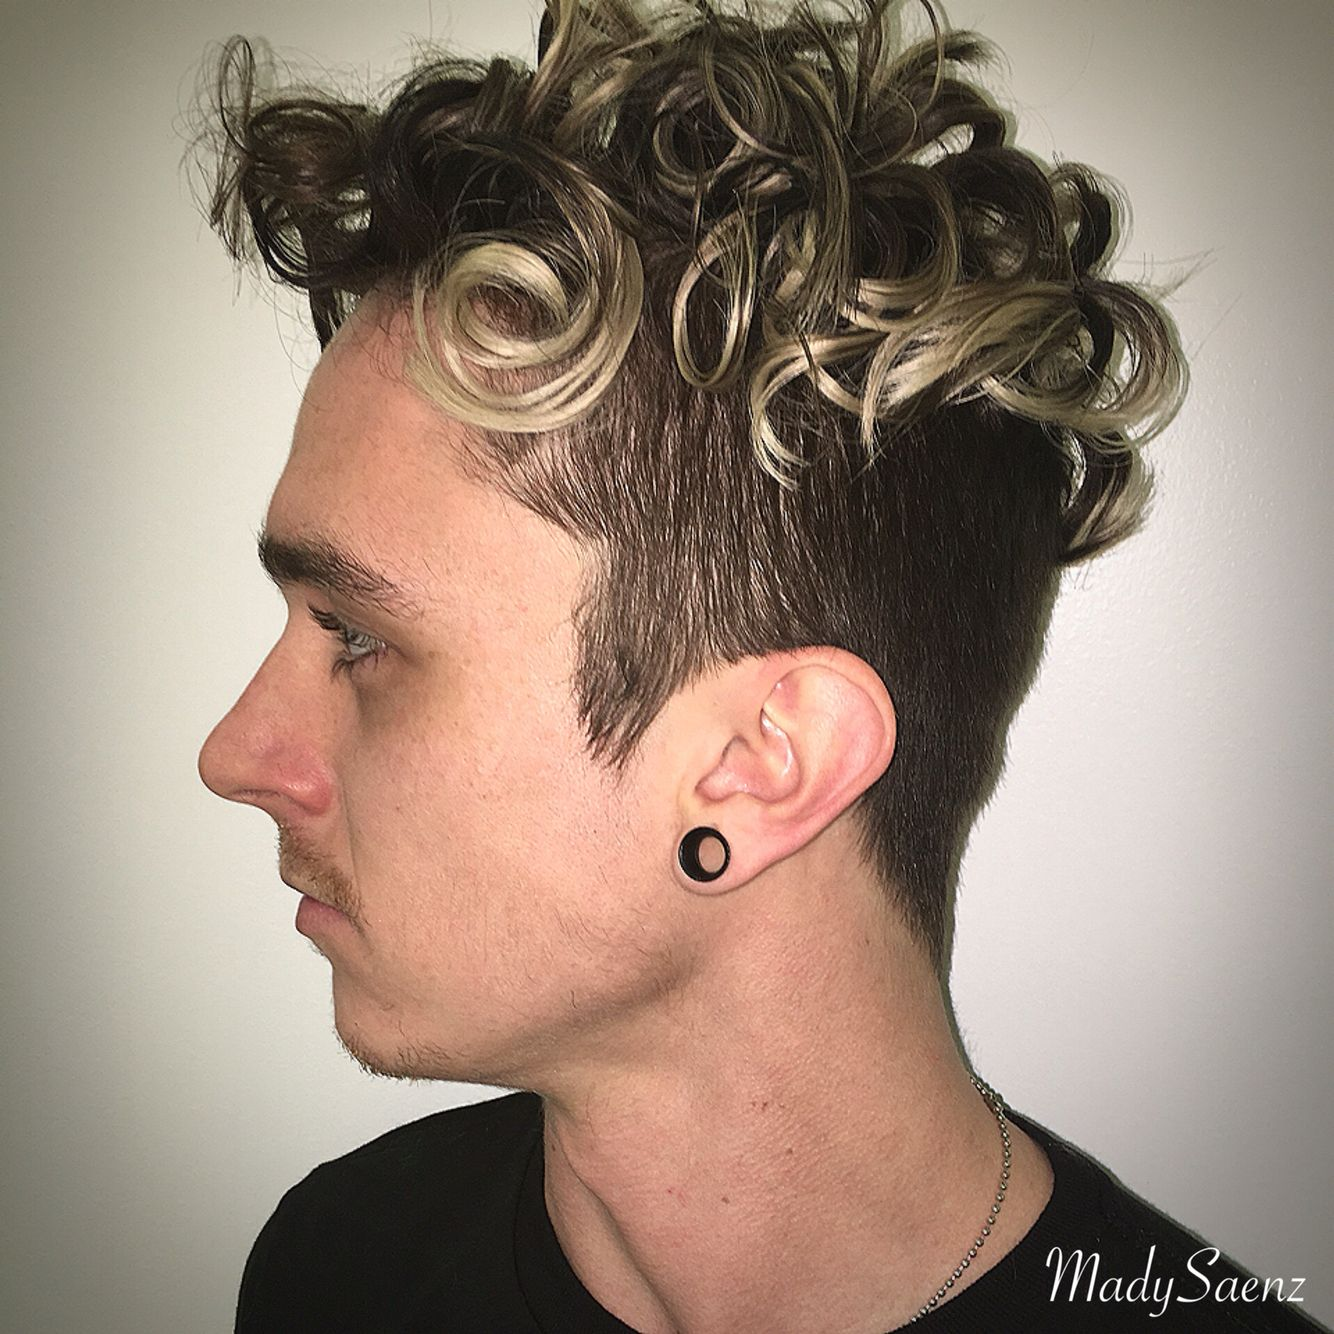 Mens Perm Today There Coming Back Chic Cutlyhair